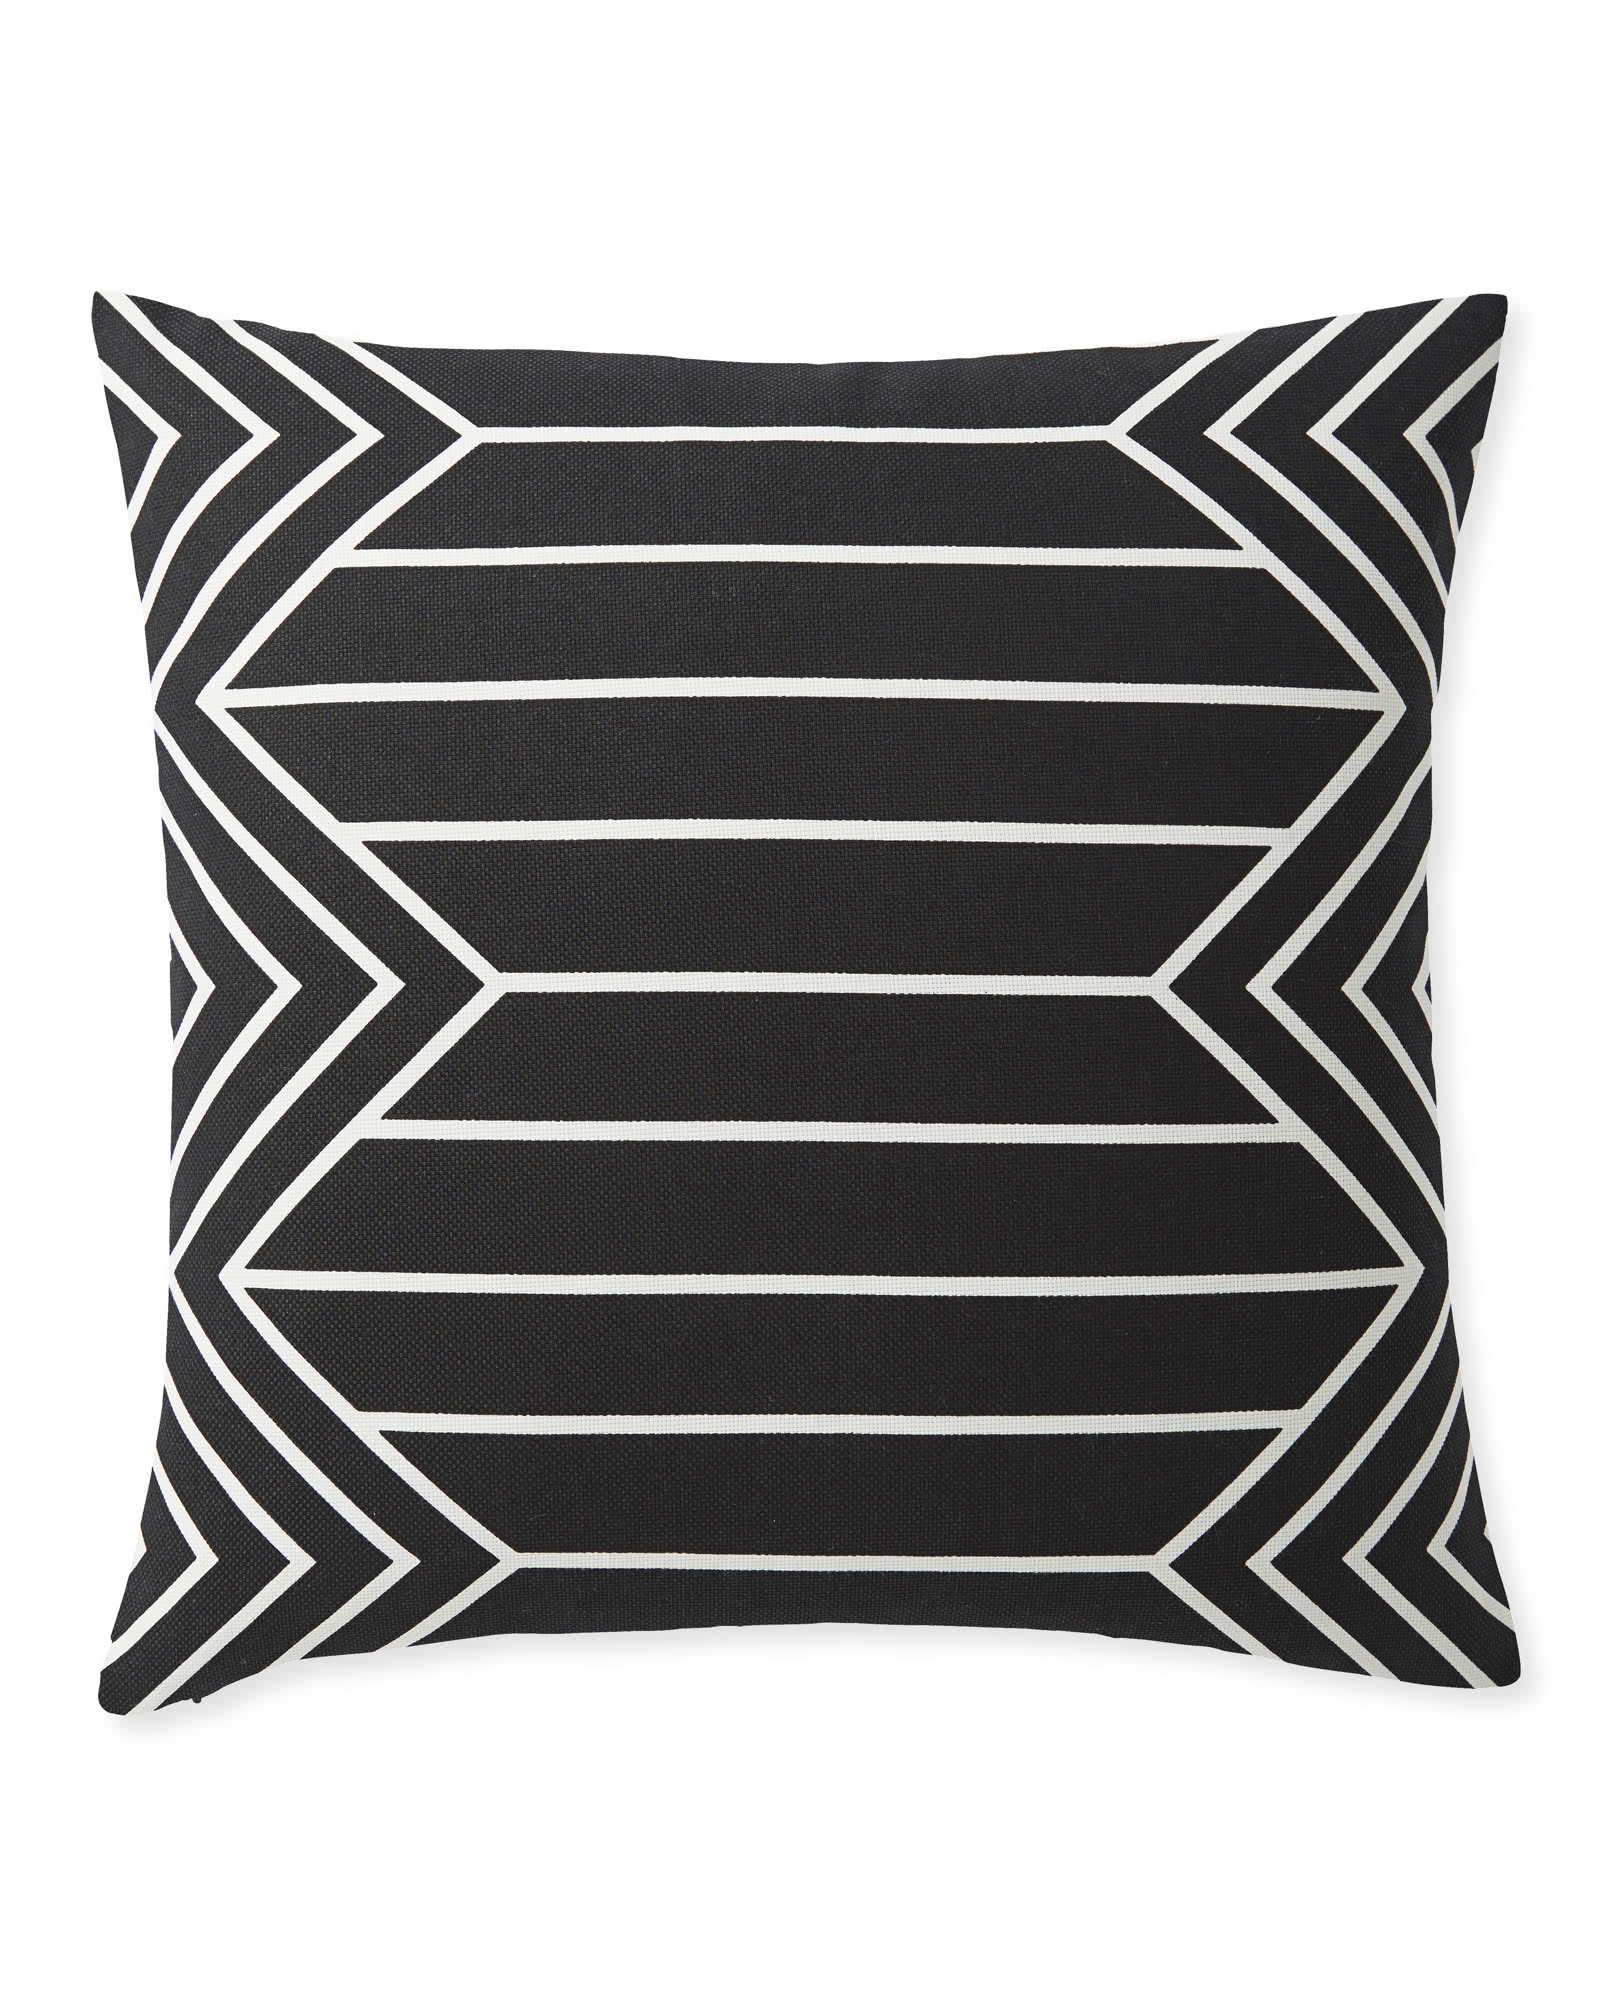 Portsmouth Outdoor Pillow Cover, Black